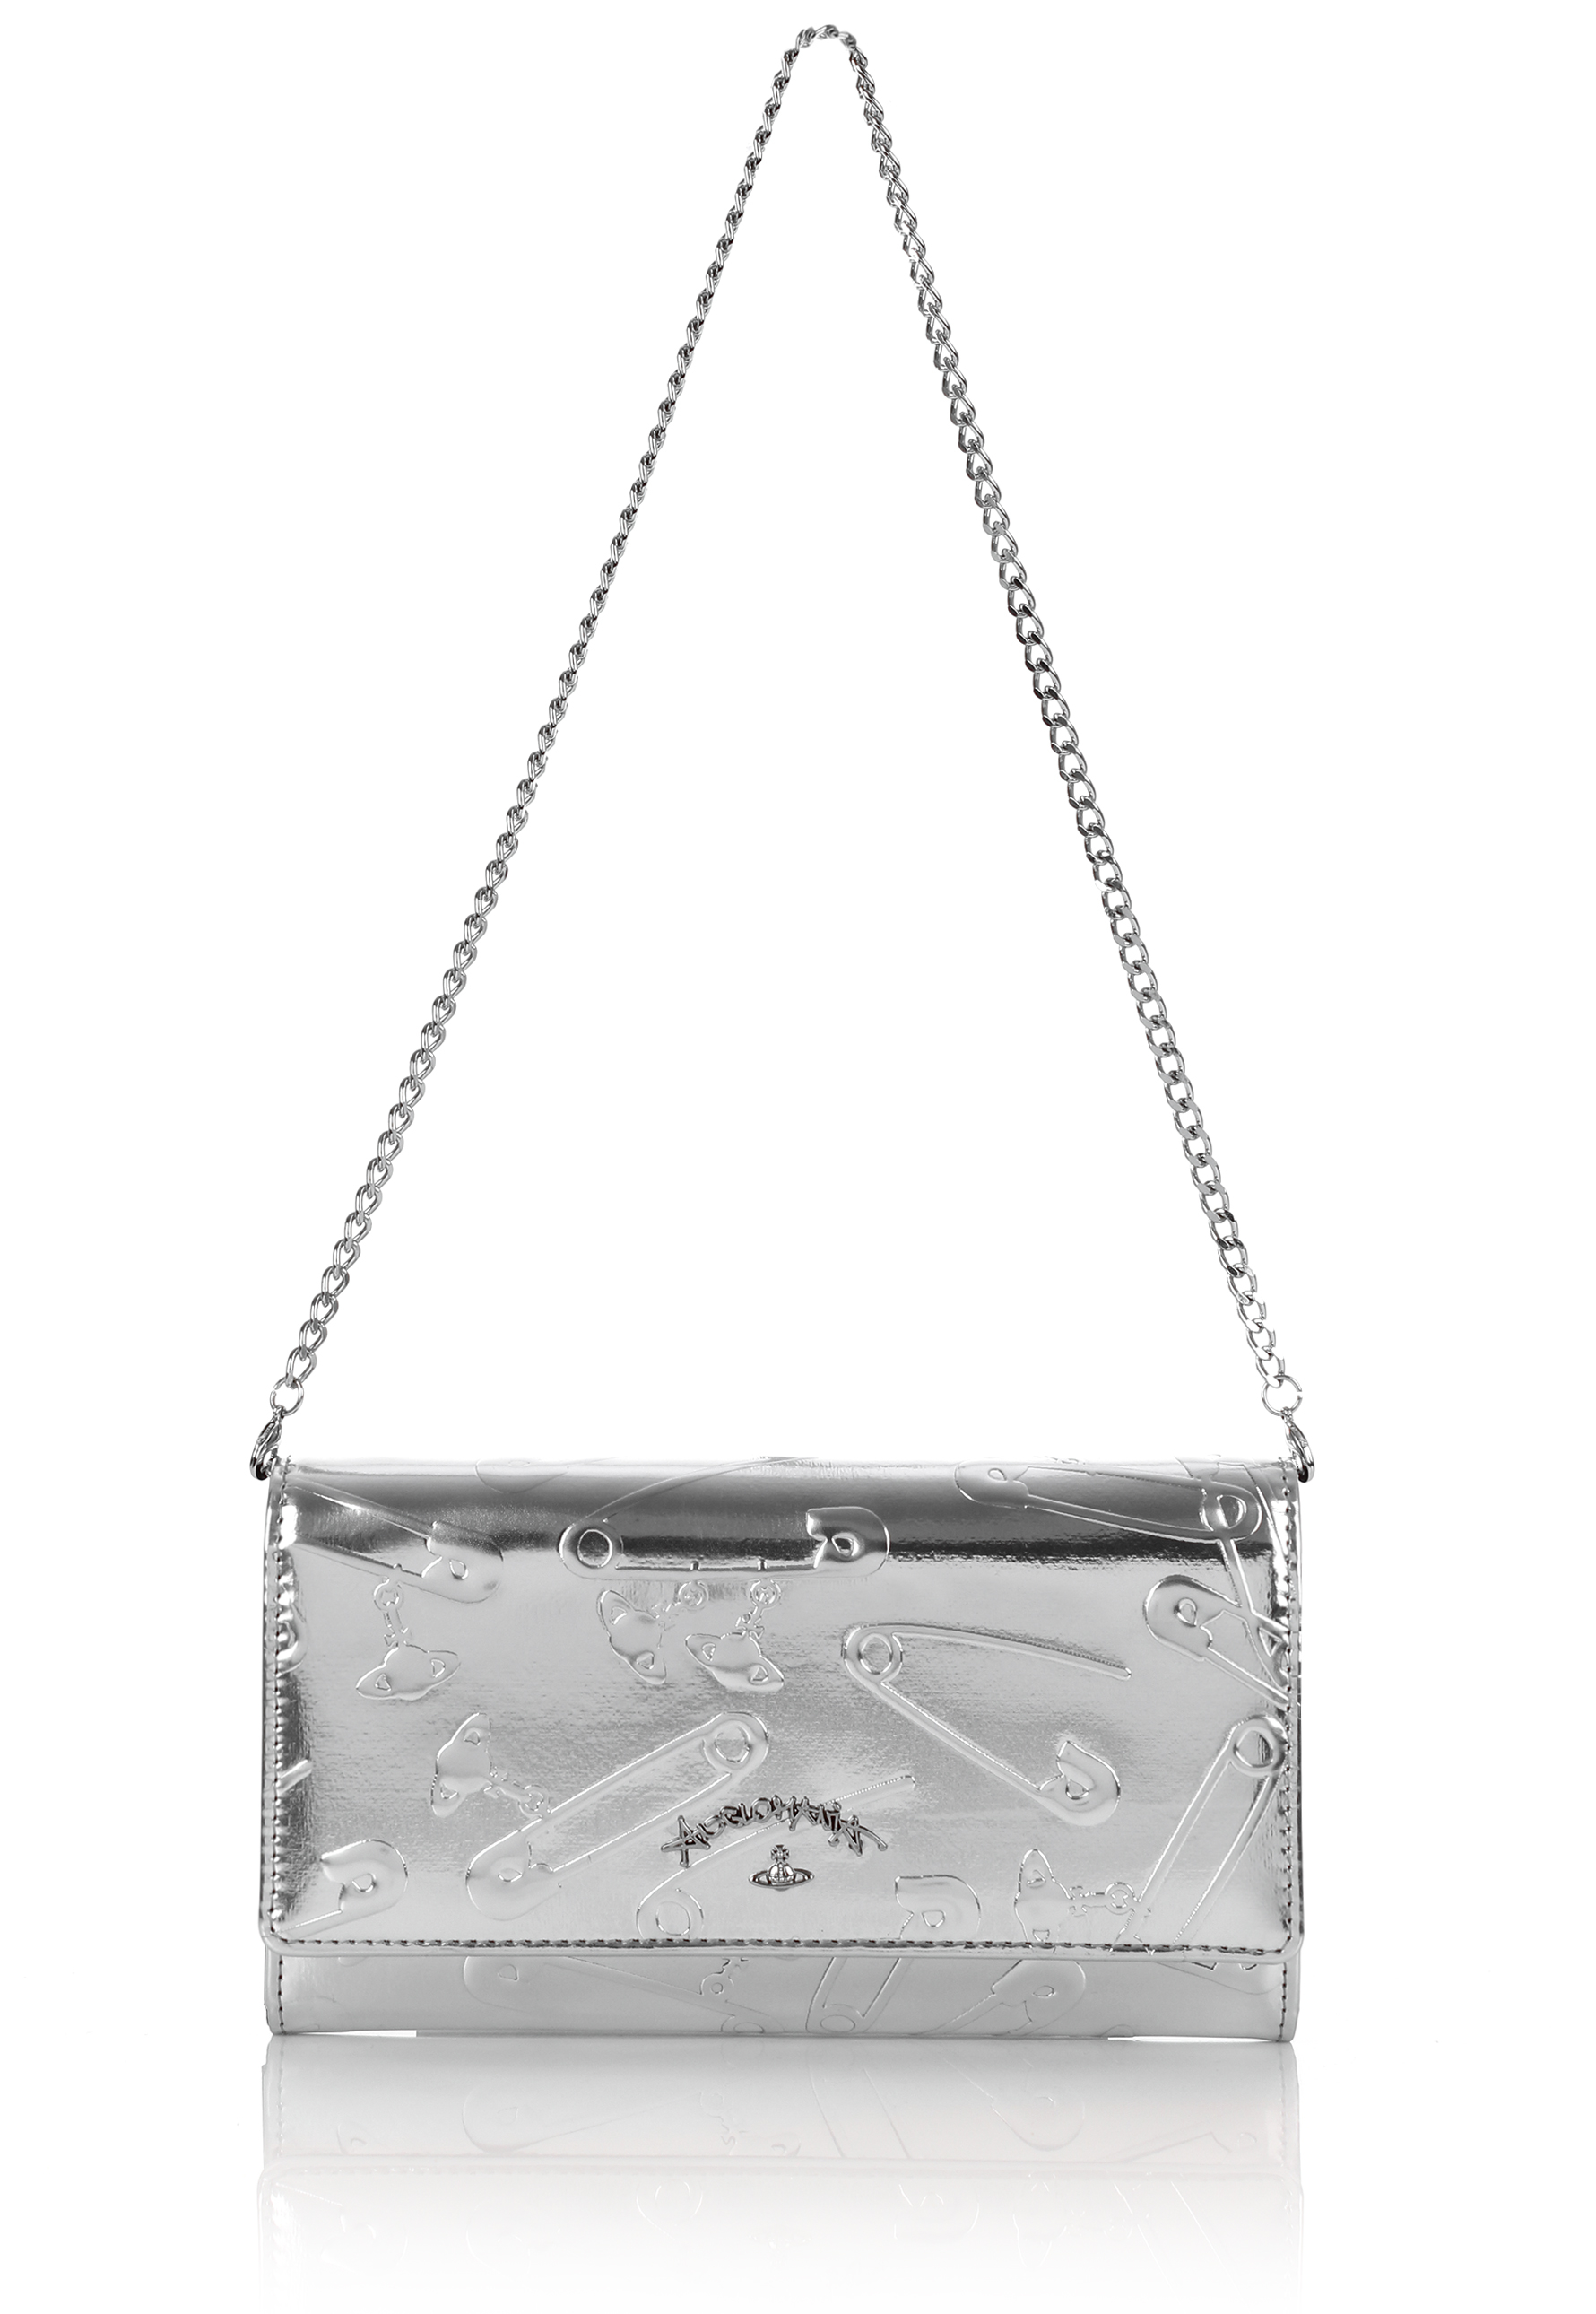 7ea0a6549af0 Lyst - Vivienne Westwood Safety Pin 321238 Long Purse With Chain ...